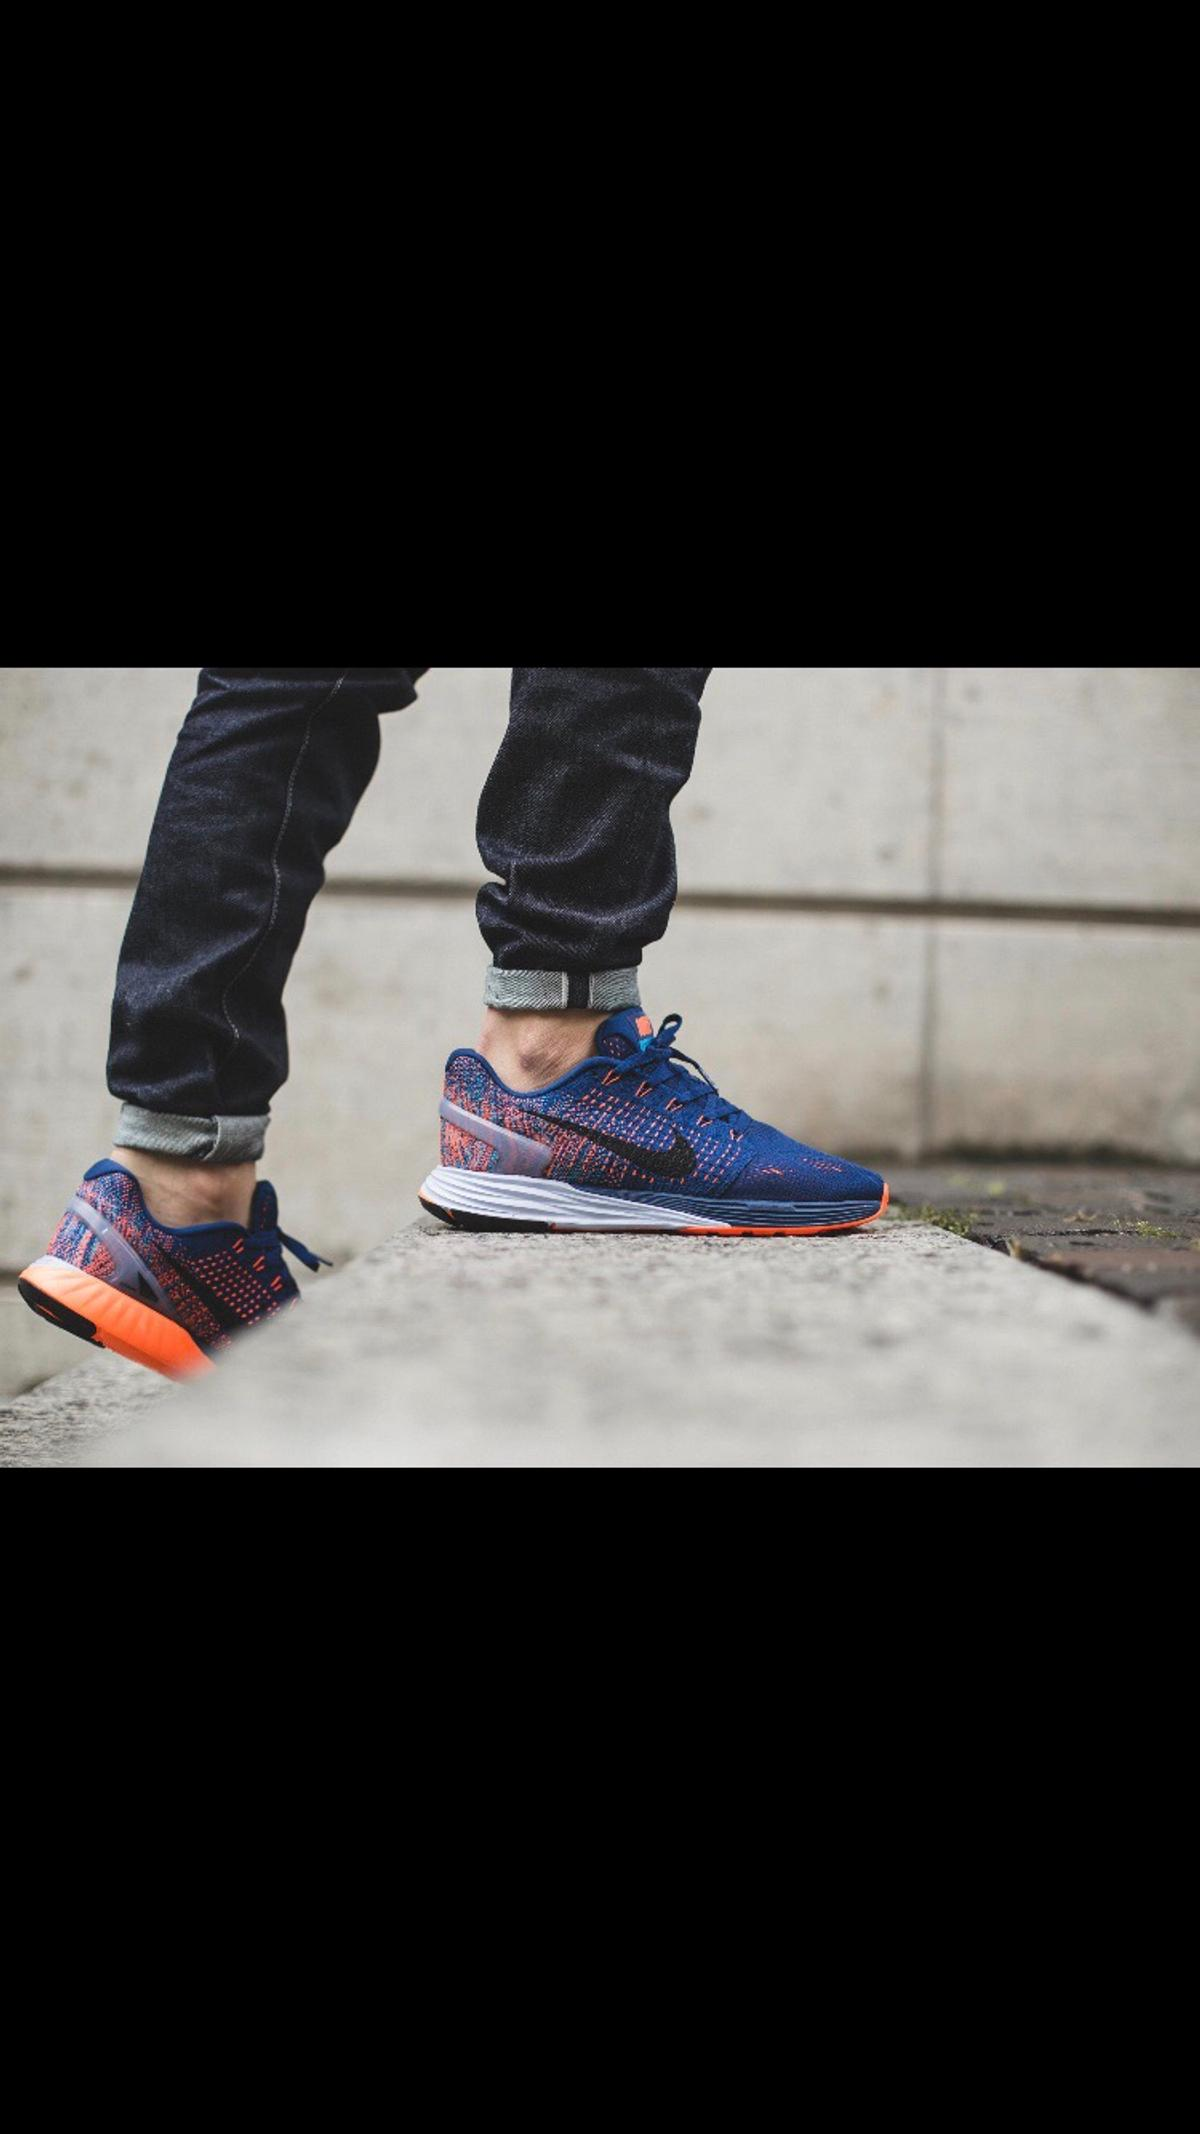 best loved 2935b 9cd5a Nike lunarglide trainers